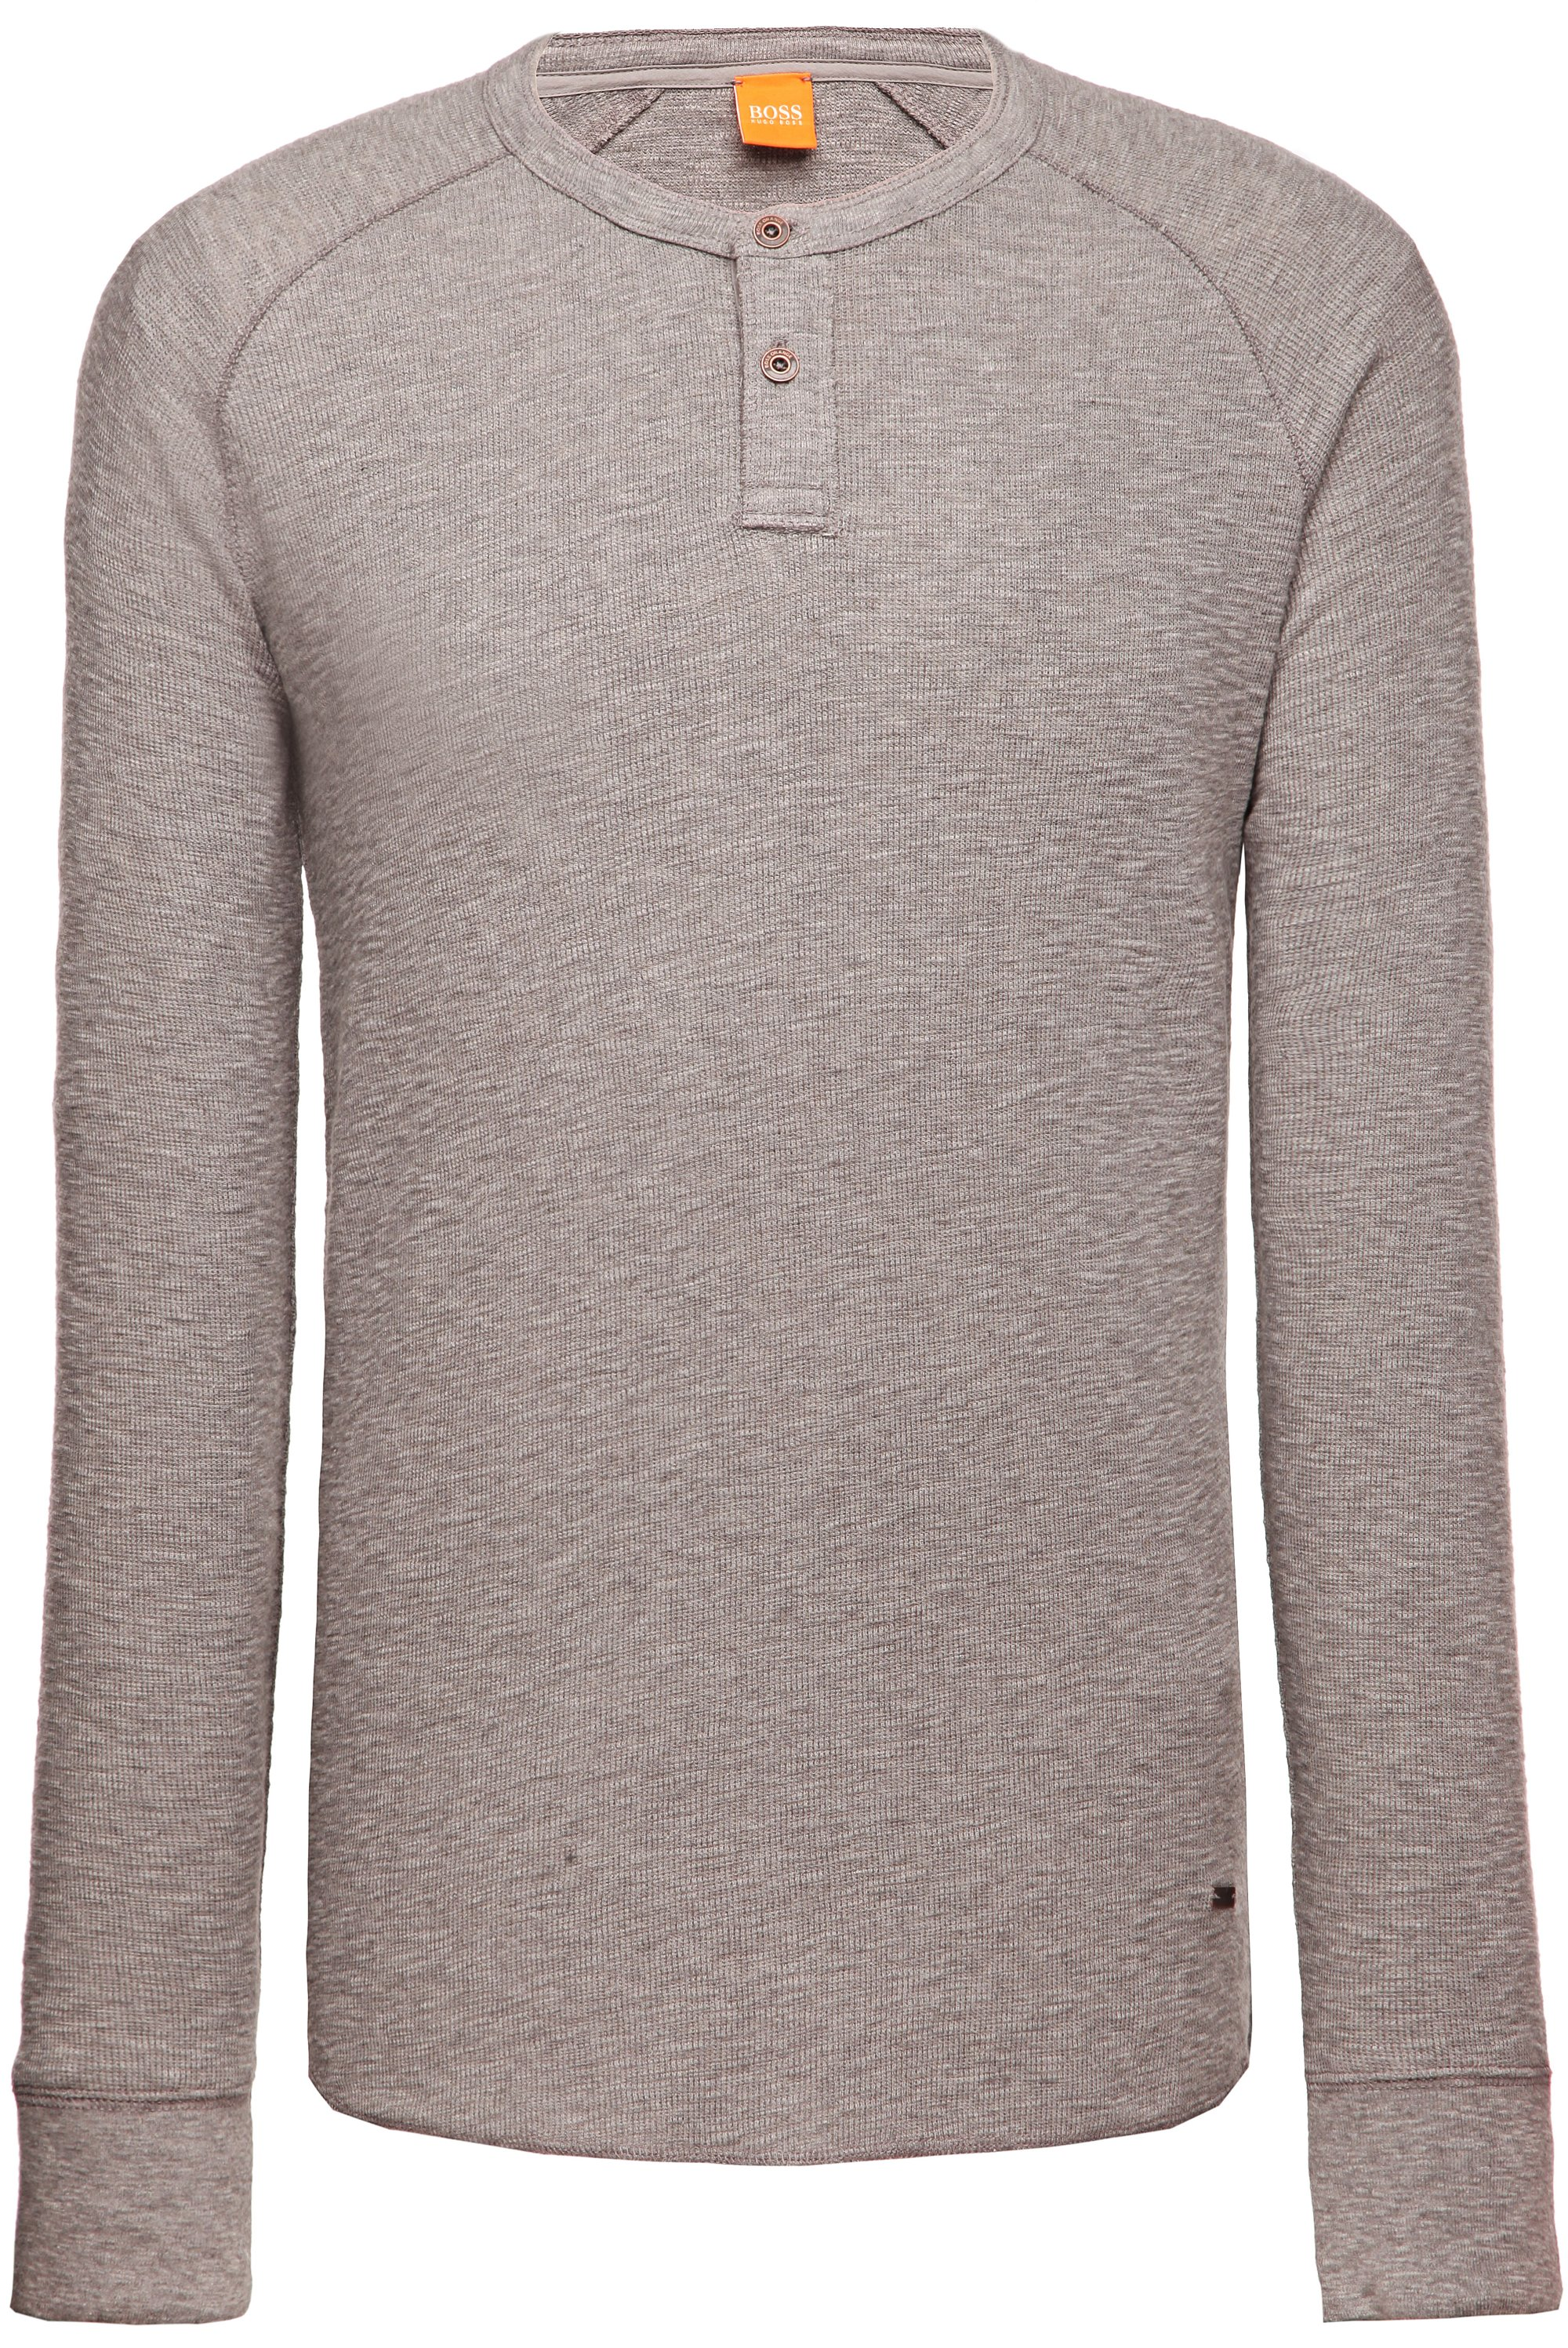 Cotton long-sleeve shirt 'Trucker 1', Light Grey